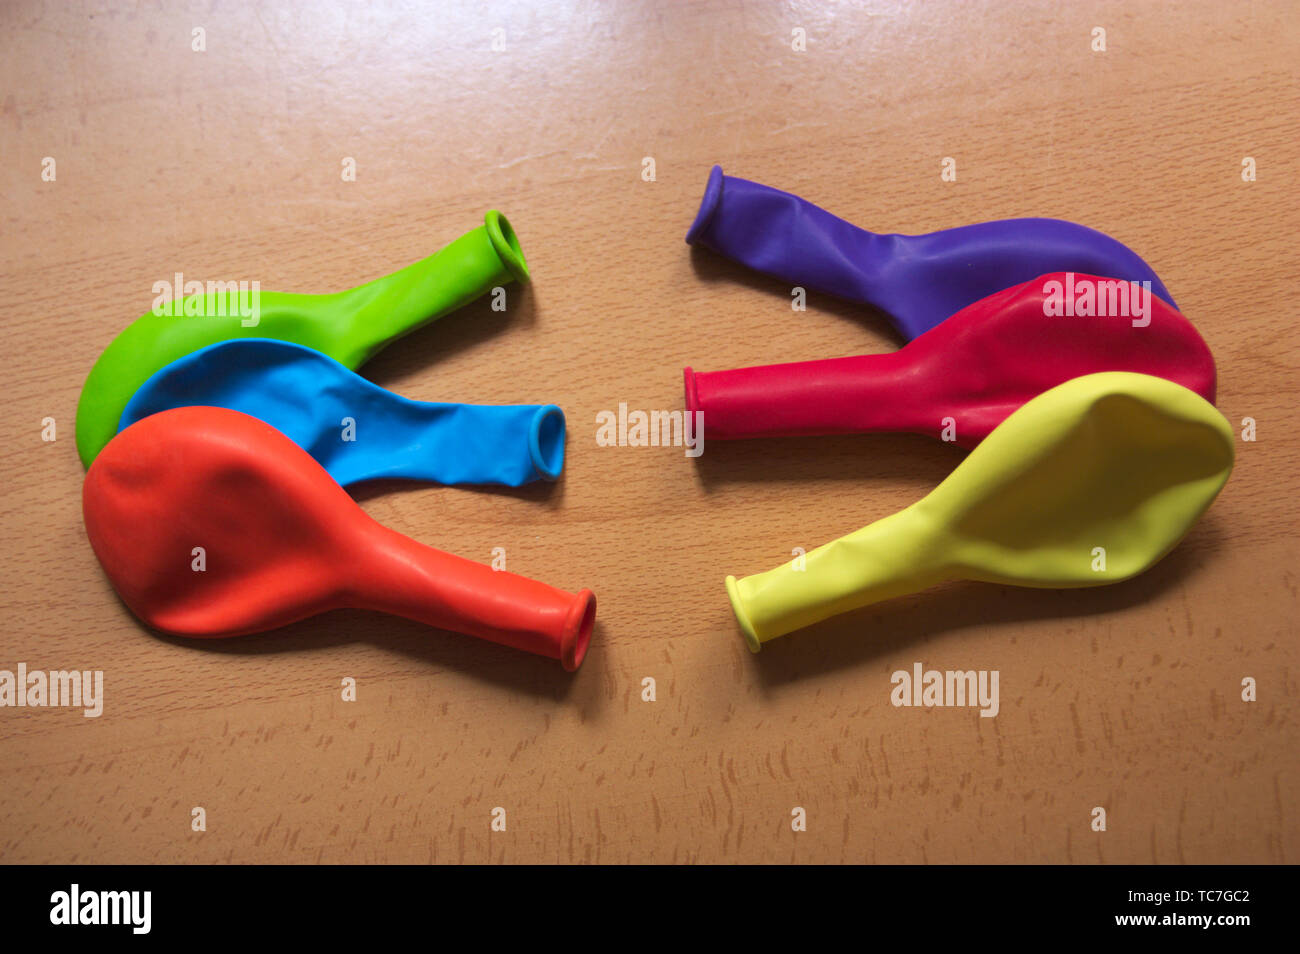 Balloons of colors red, orange, yellow, green, purple and blue on a table - Stock Image